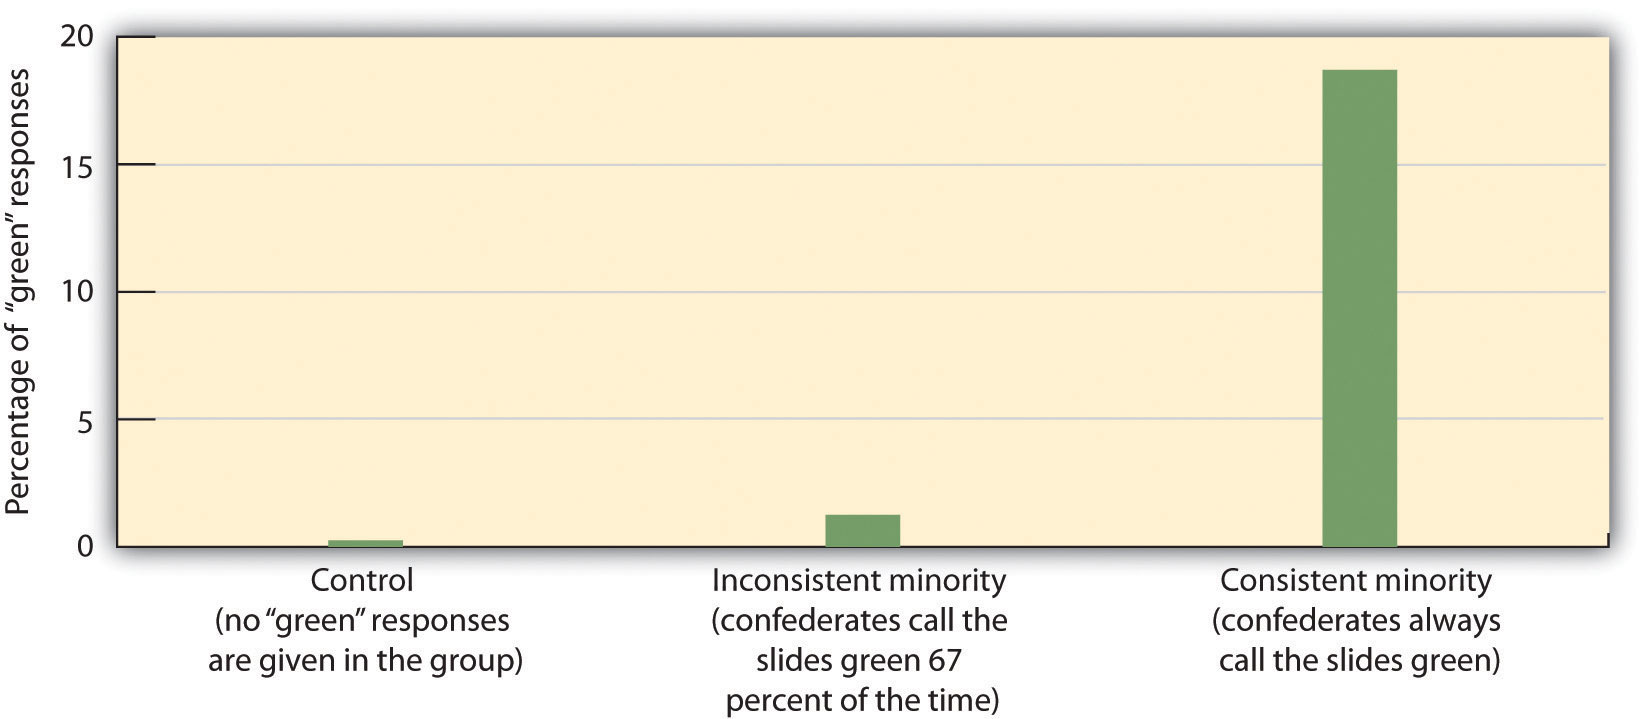 In the studies of minority influence by Serge Moscovici, only a consistent minority (in which each individual gave the same incorrect response) was able to produce conformity in the majority participants. Data are from Moscovici, Lage, and Naffrechoux (1969).